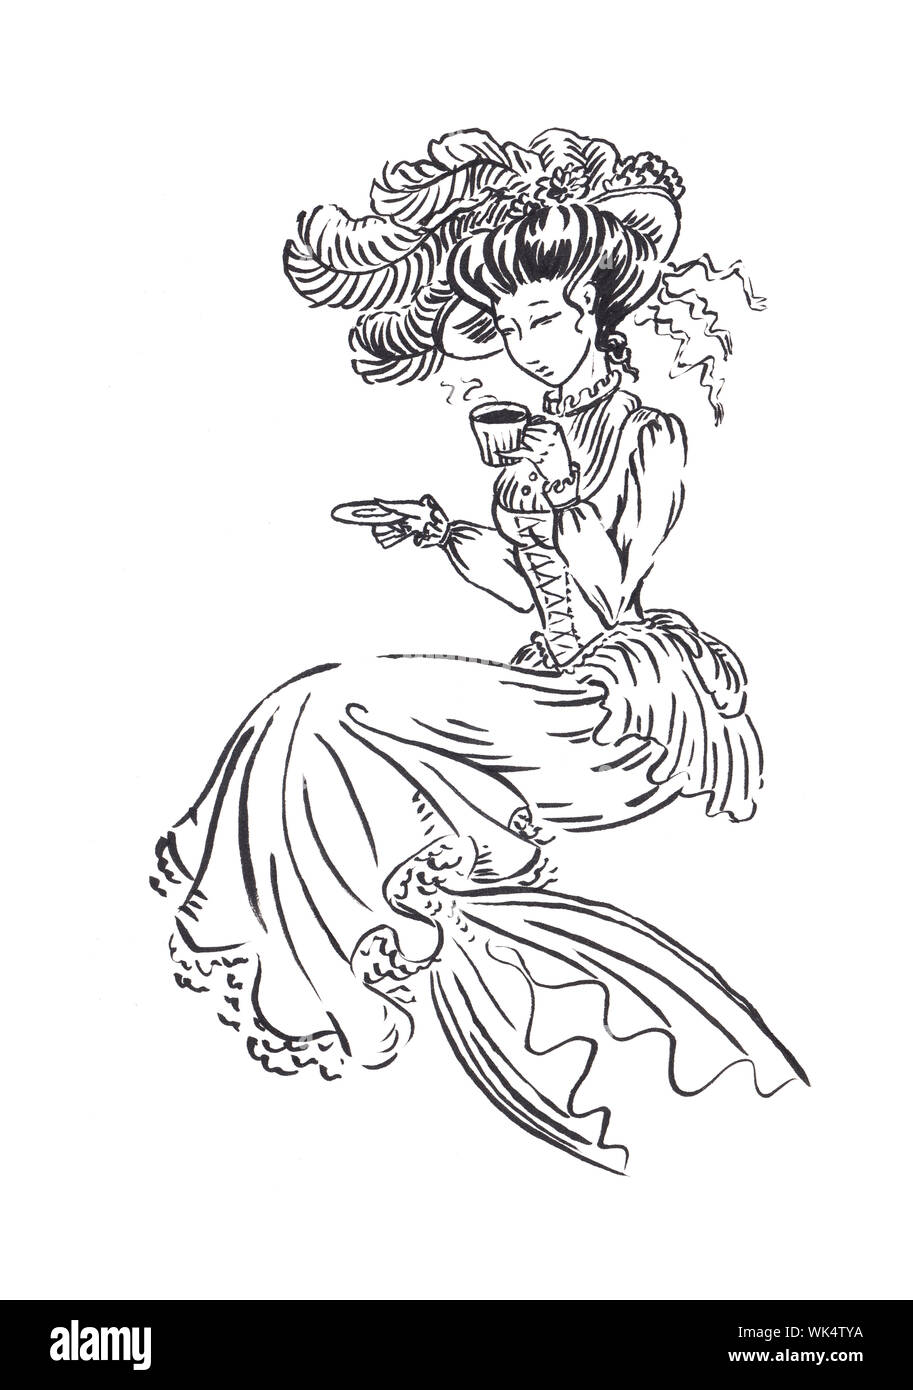 223 Best Regency, Victorian, Georgian Coloring Pages images in ... | 1390x913